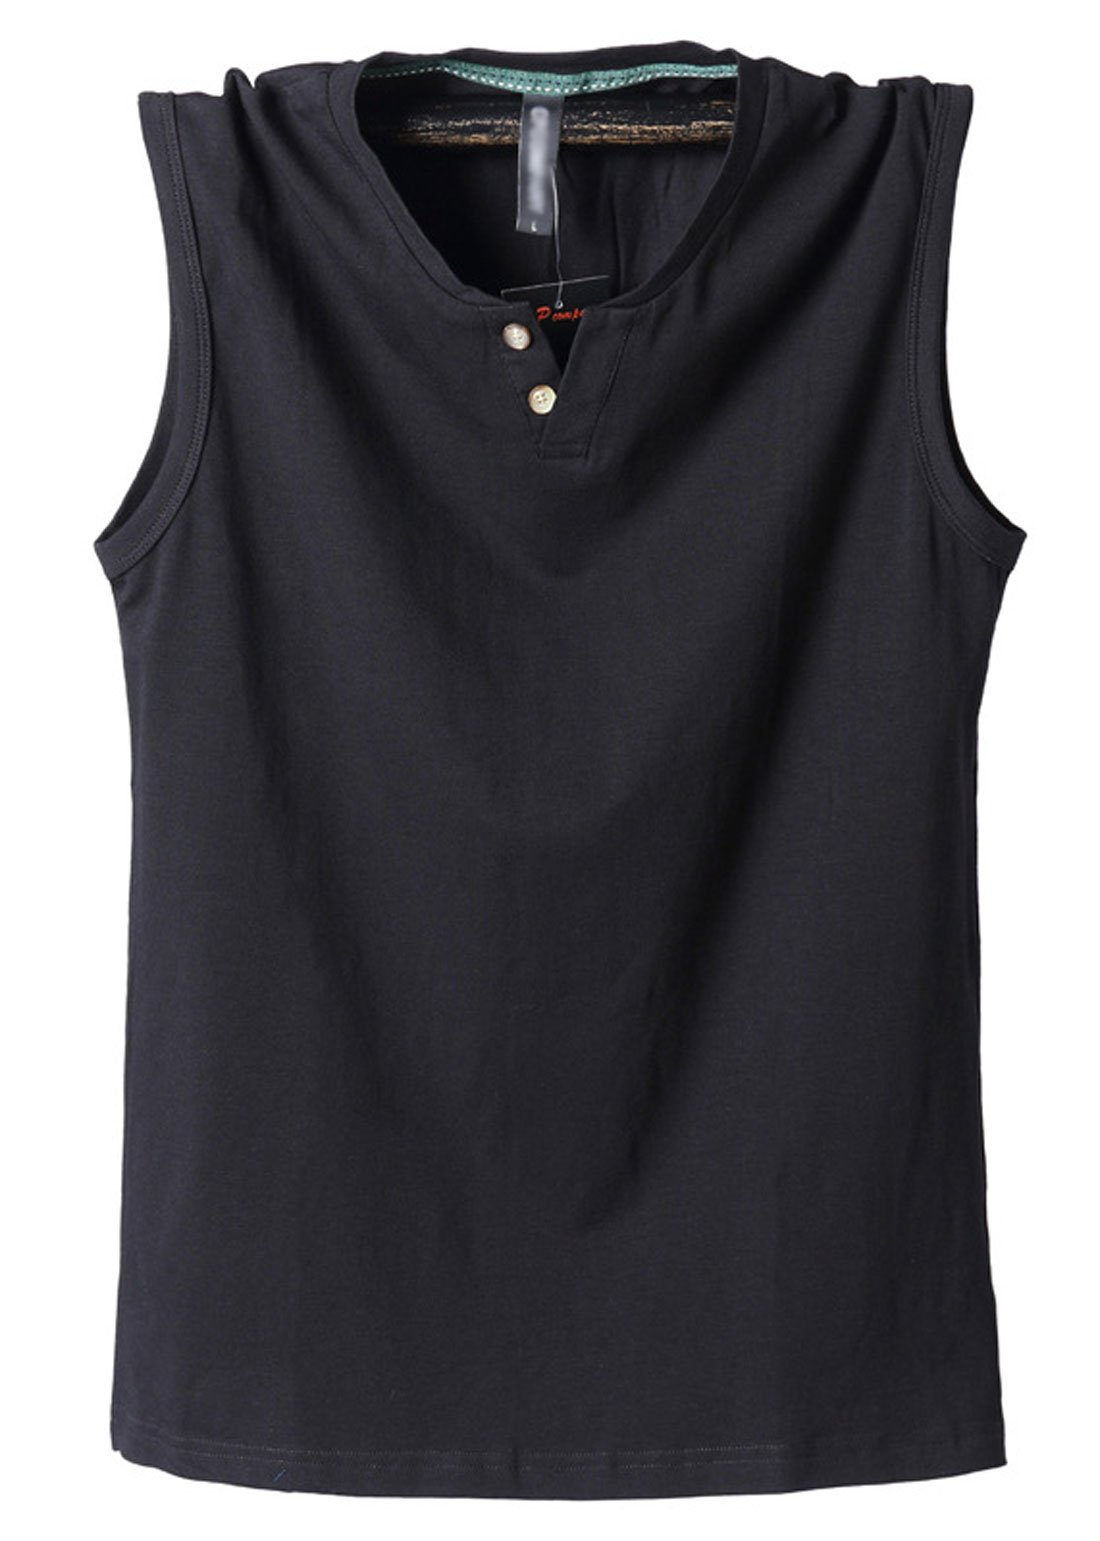 Chartou Men's Skin-Friendly Sleeveless Stretchable Sport Fitness Henley T Shirts Waistcoat (Large, Black)